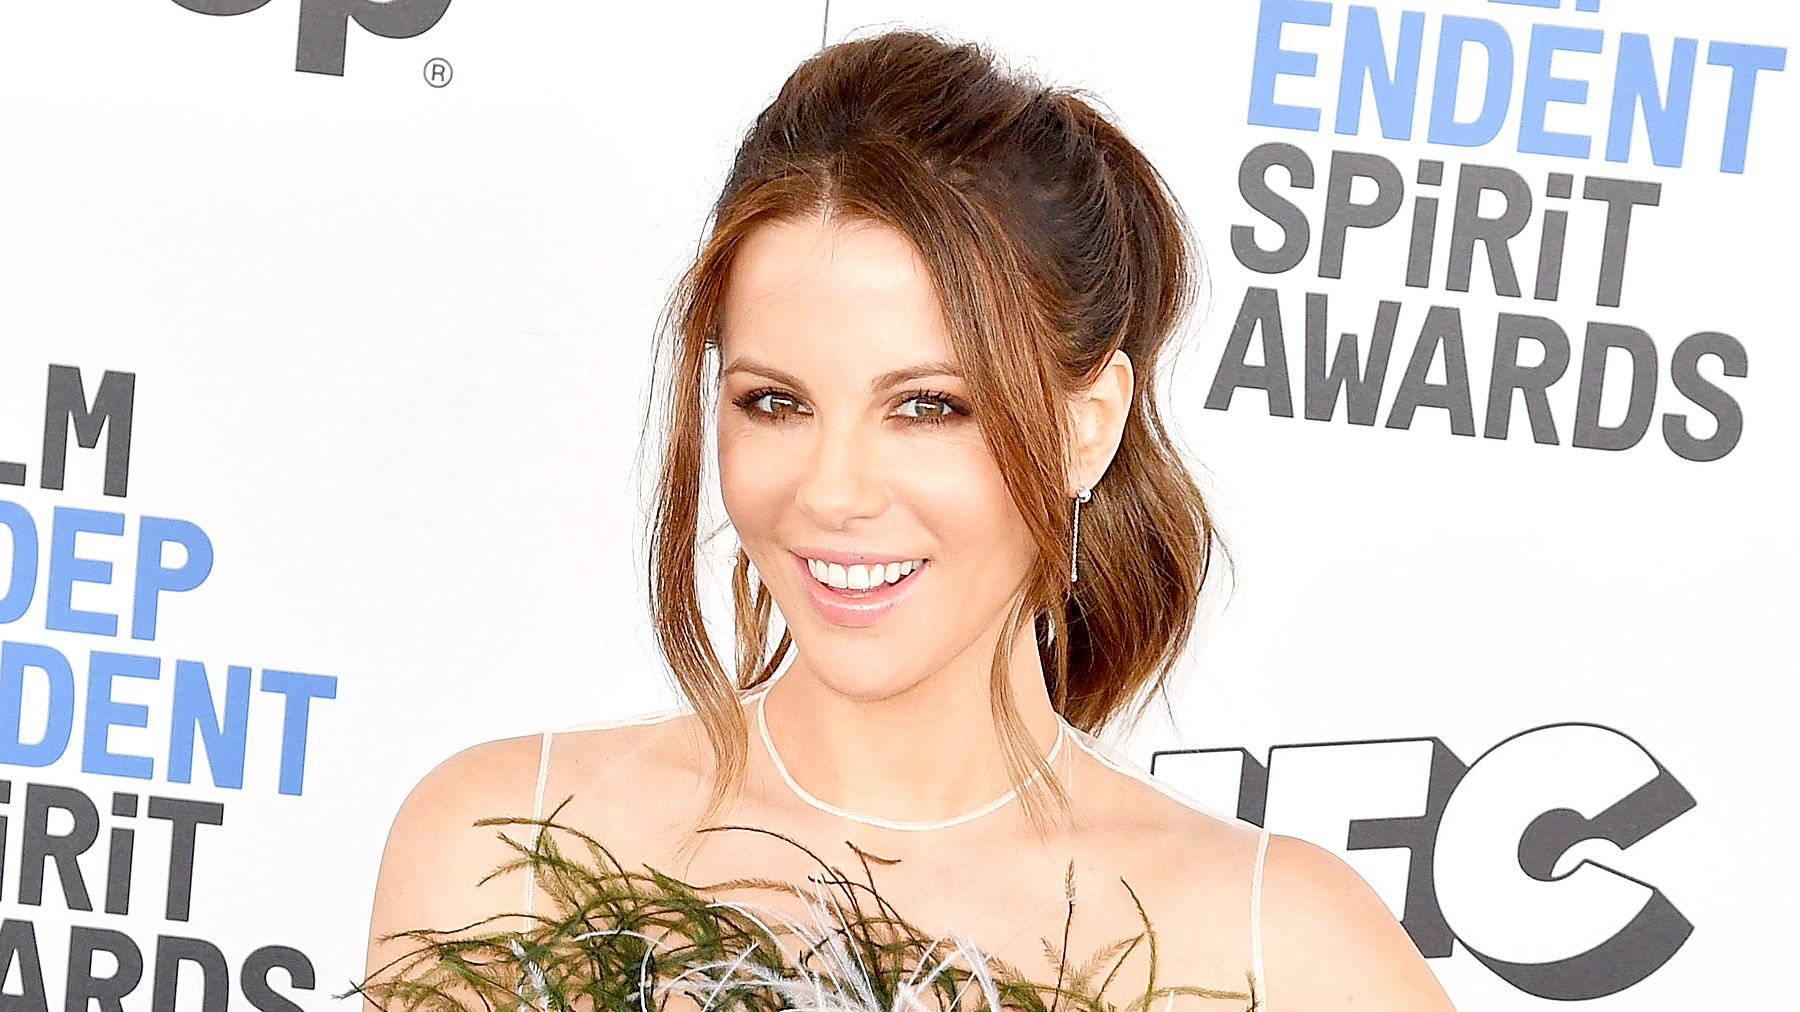 Kate Beckinsale arrives at the Independent Spirit Awards on February 25, 2017 in Santa Monica, California.